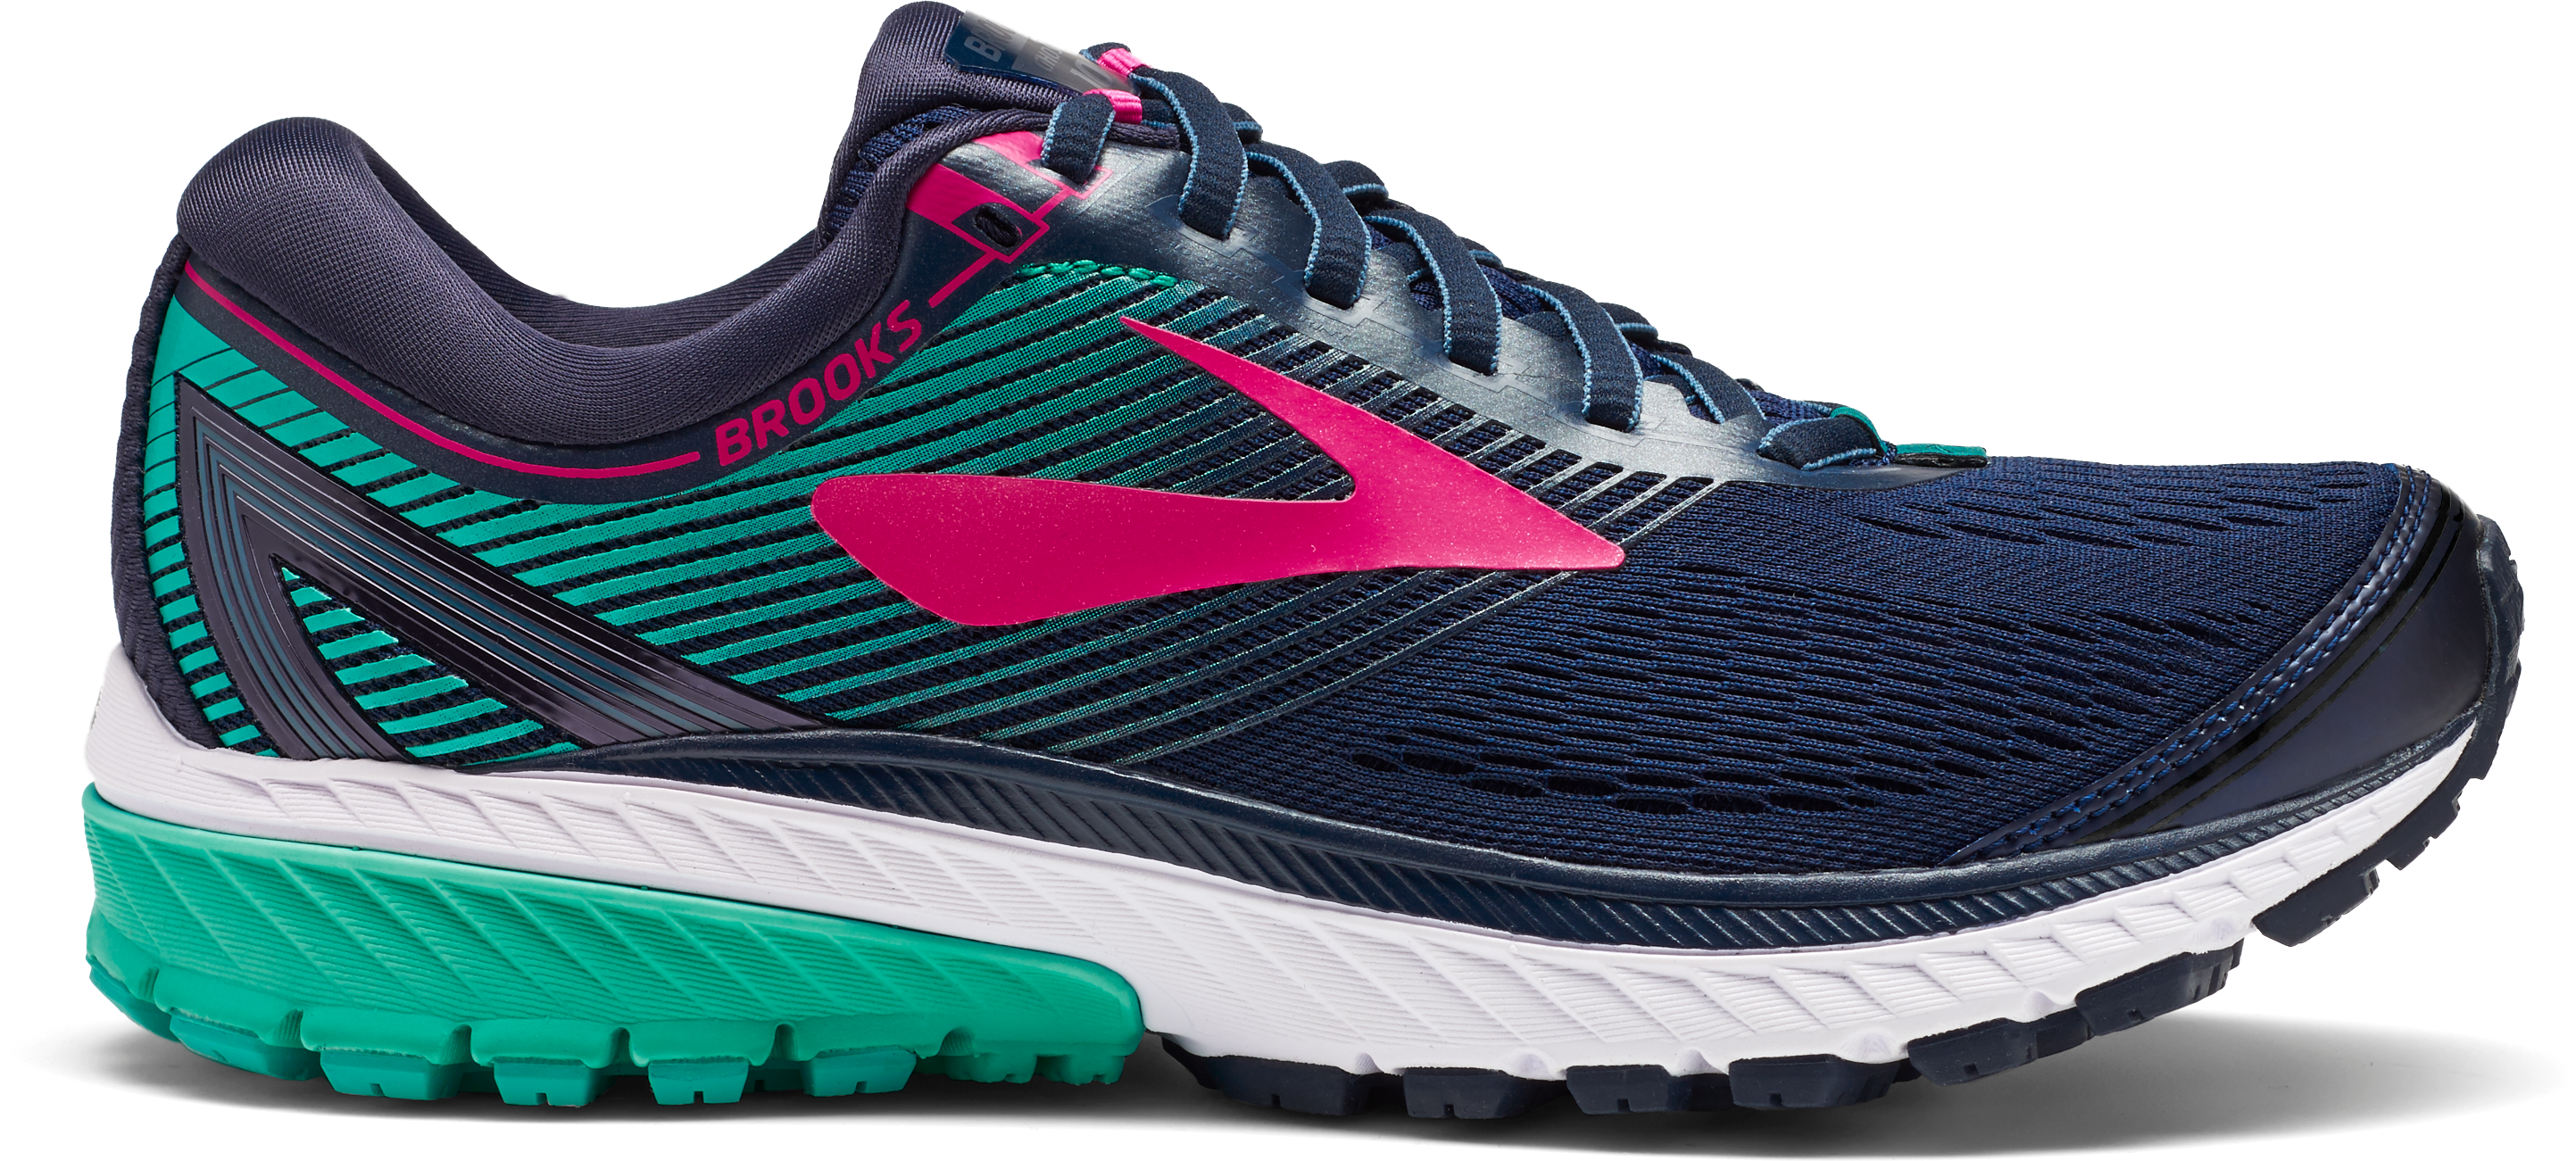 777879c97ad Women s Ghost 10 Running Shoe - Navy Pink Teal Green – Gazelle Sports